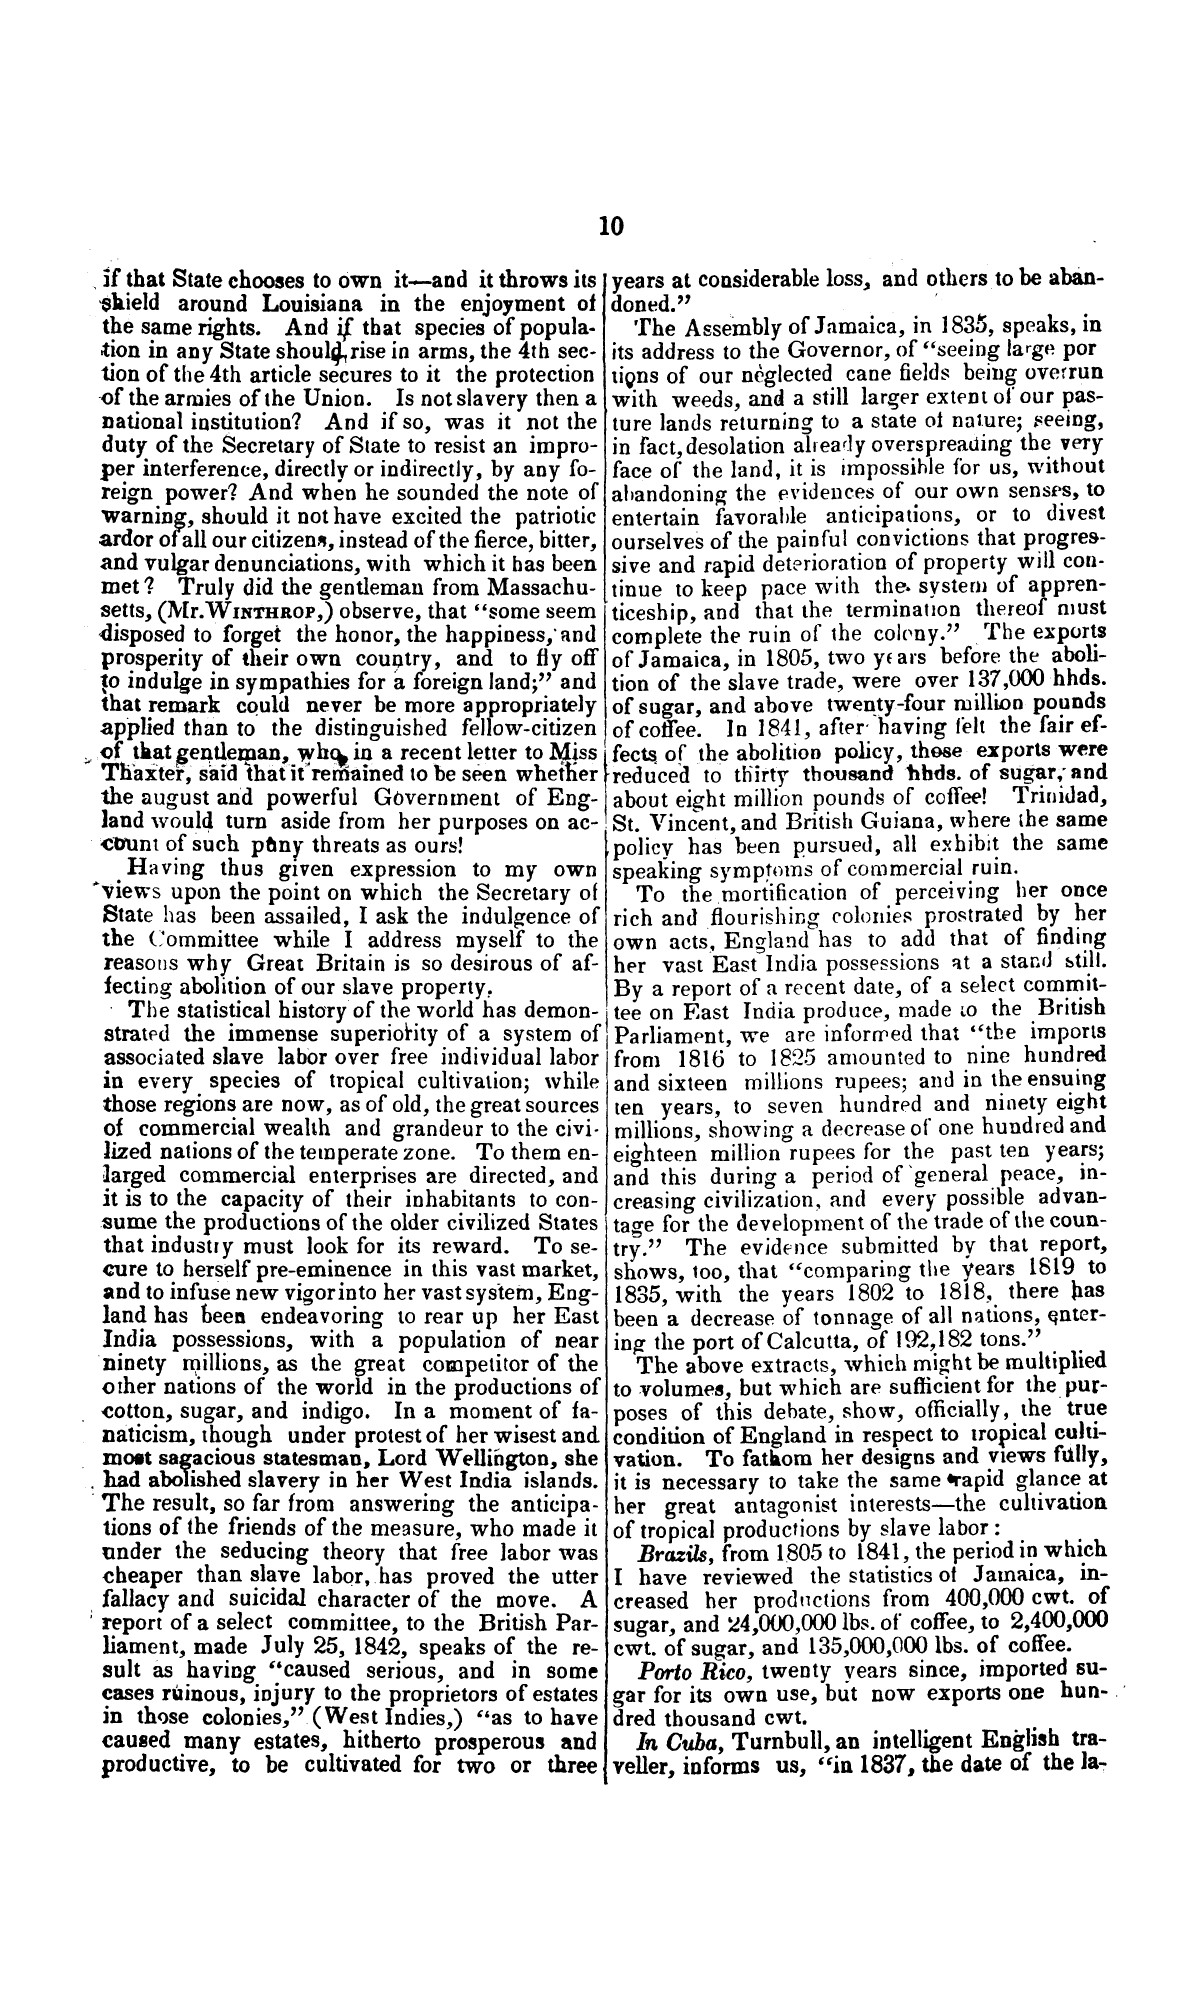 Speech of Hon. Wm. Lowndes Yancey, of Alabama, on the annexation of Texas to the United States, delivered in the House of Representatives, Jan. 7, 1845.                                                                                                      [Sequence #]: 10 of 14